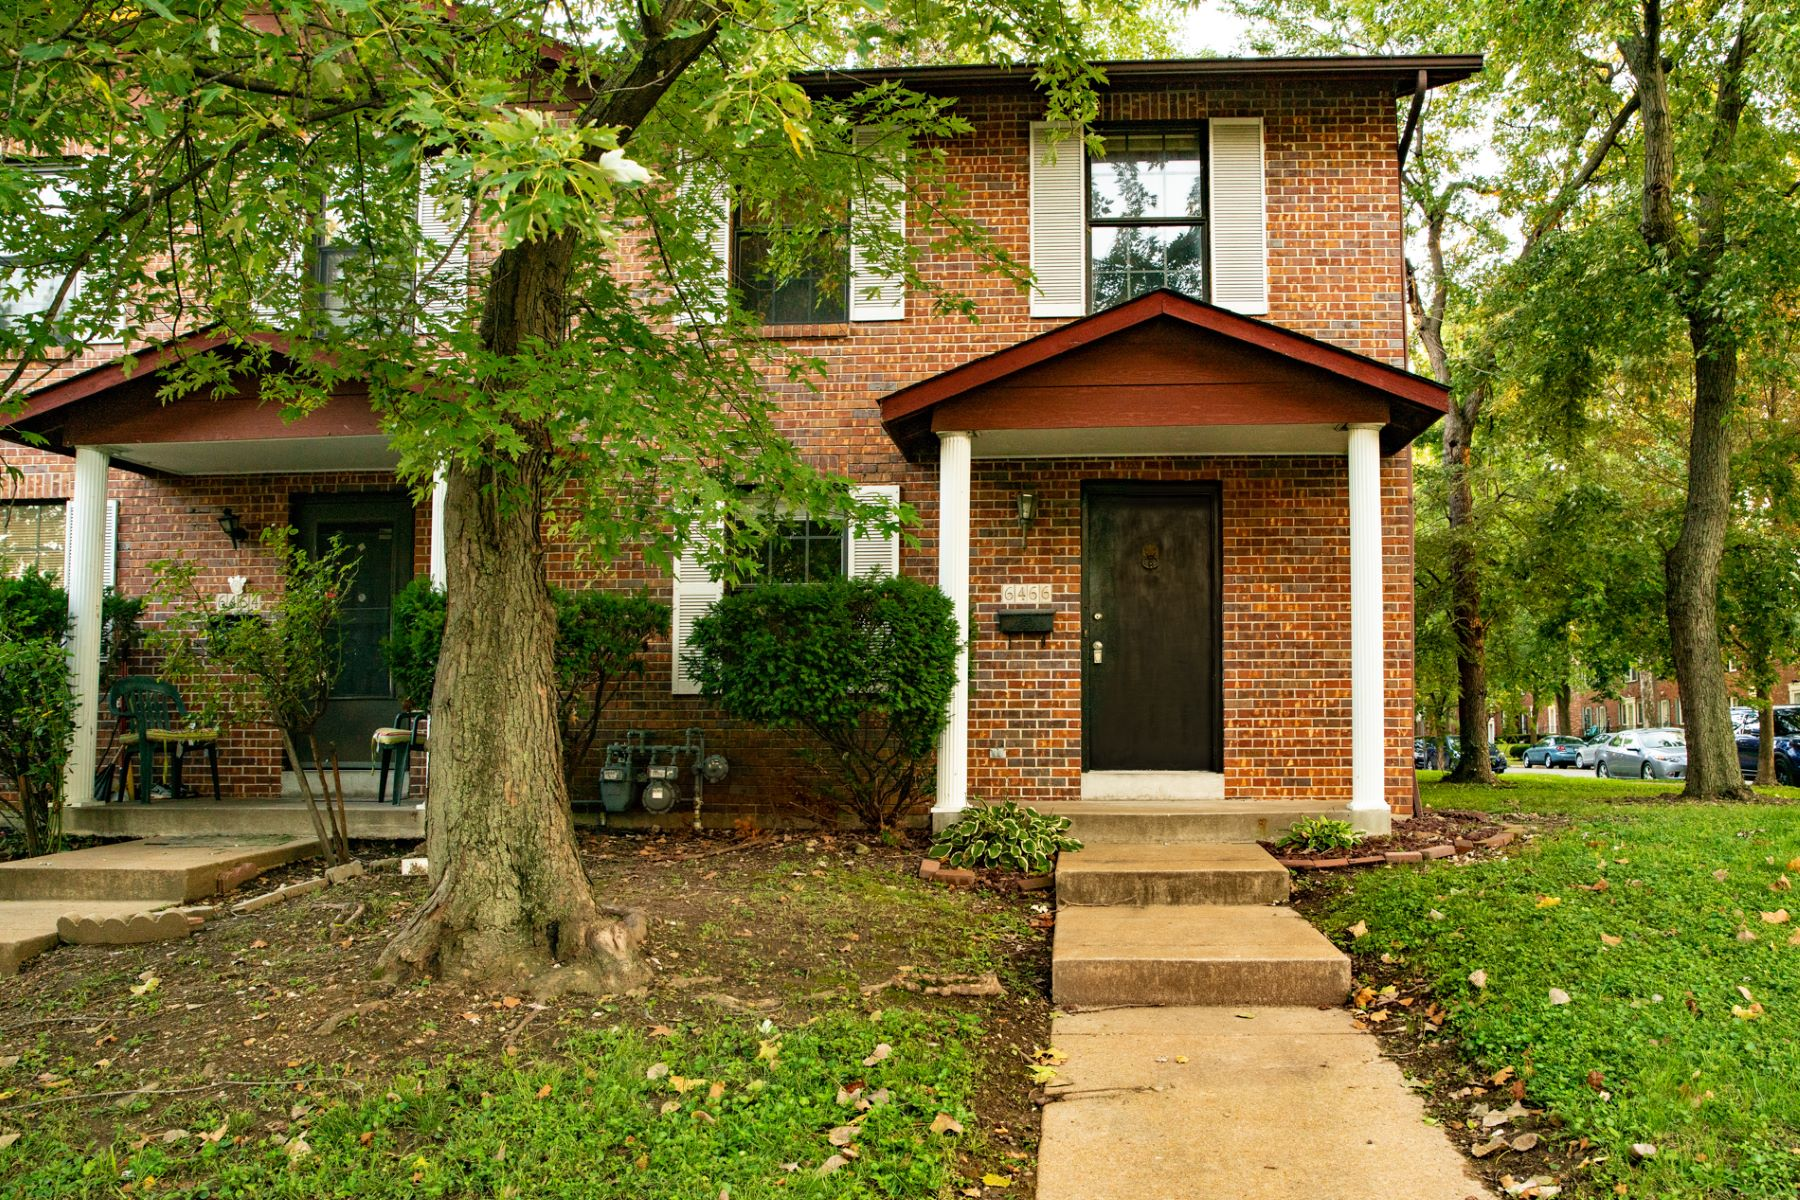 Condominium for Sale at Oakland Ave 6466 Oakland Ave St. Louis, Missouri 63139 United States